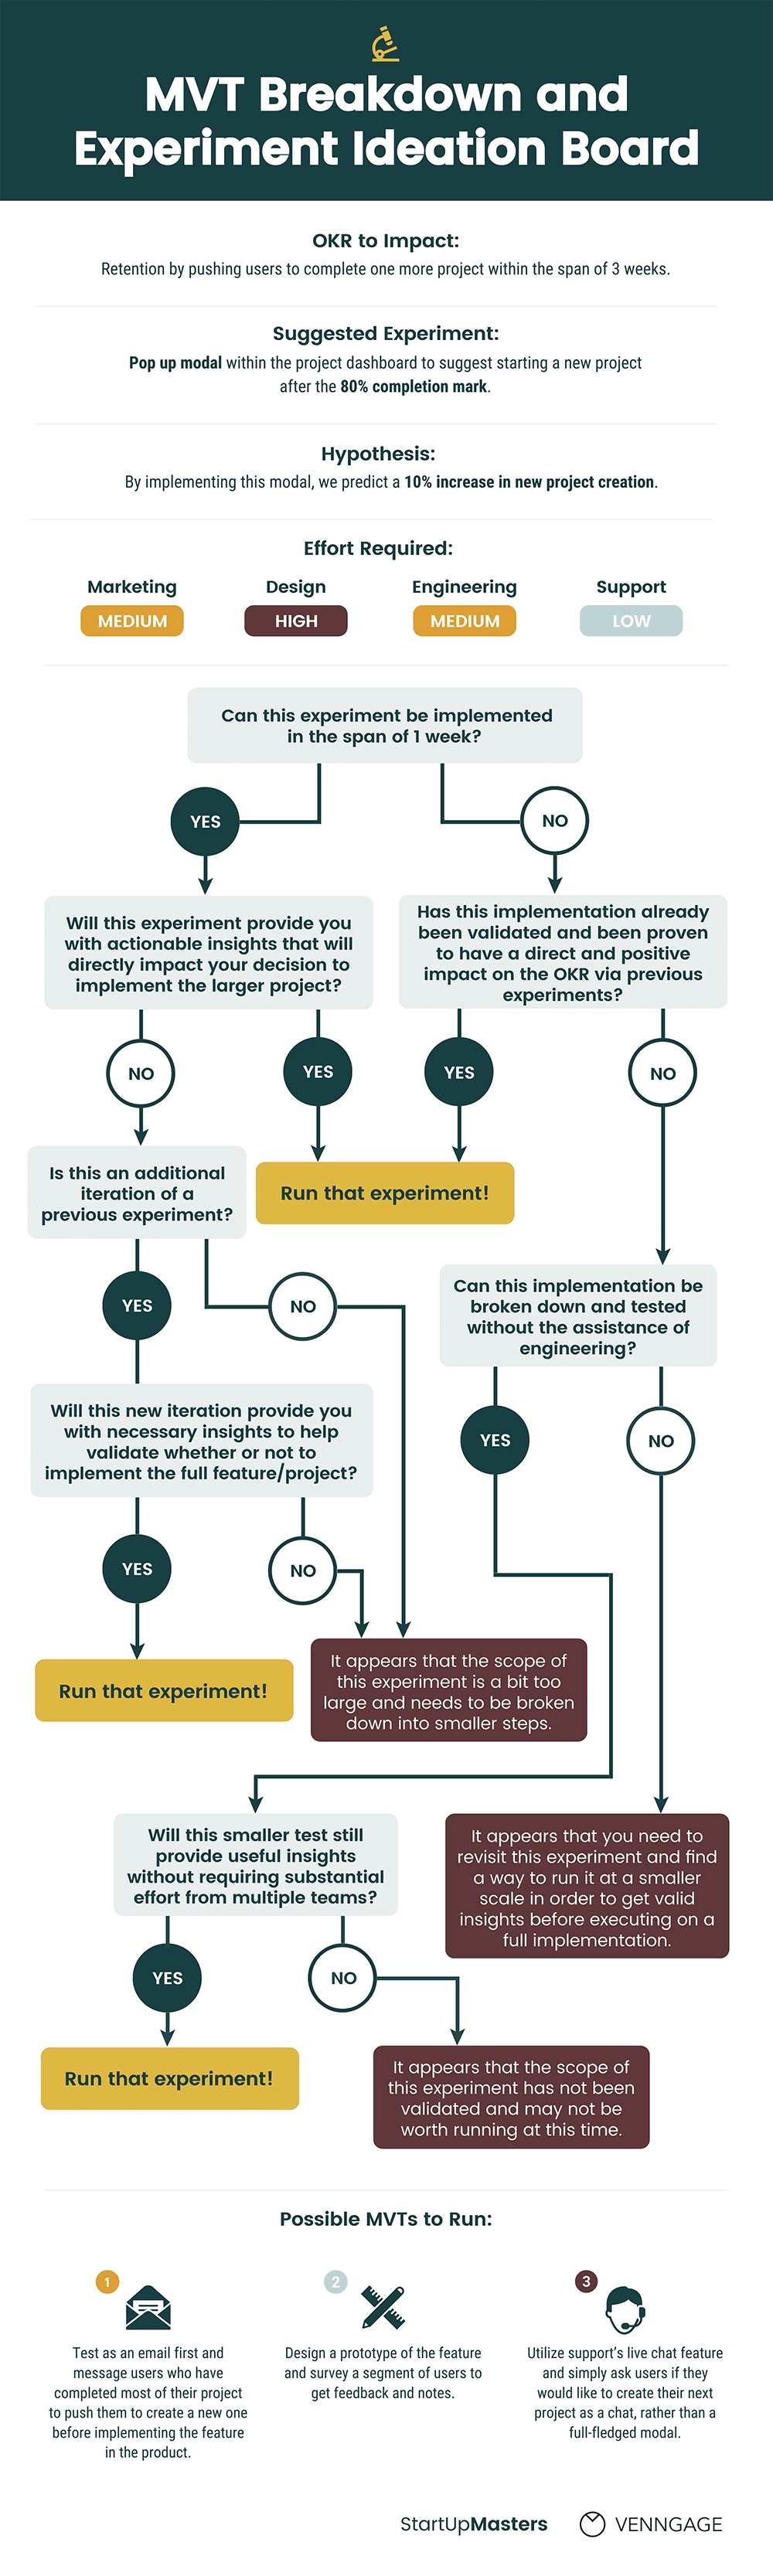 20 Flow Chart Templates, Design Tips And Examples - Venngage with regard to Printable Weekly Schedule Flow Chart